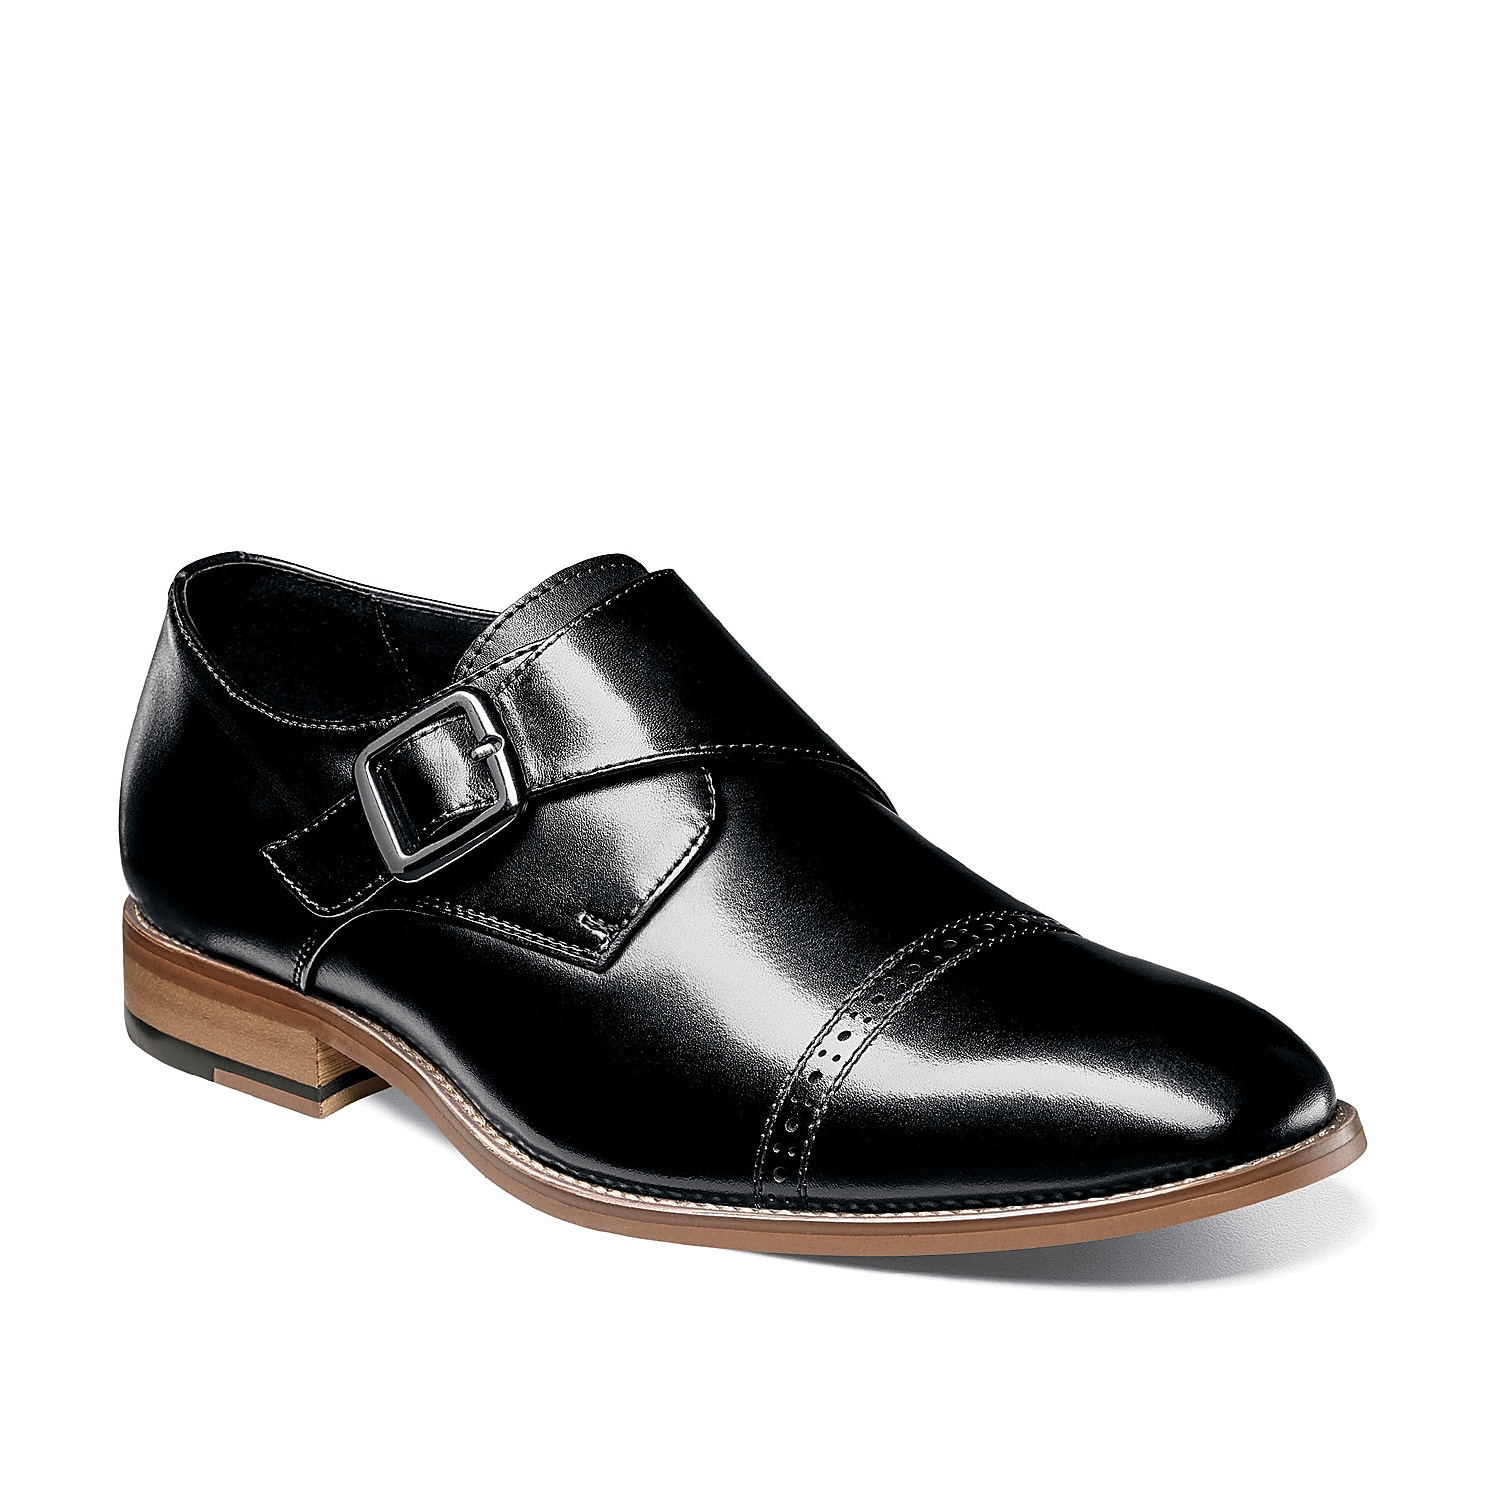 Dress up your look with these dapper Desmond monk strap shoes from Stacy Adams. This dress shoe features a brogue detailing cap toe to make this silhouette look extra snazzy!